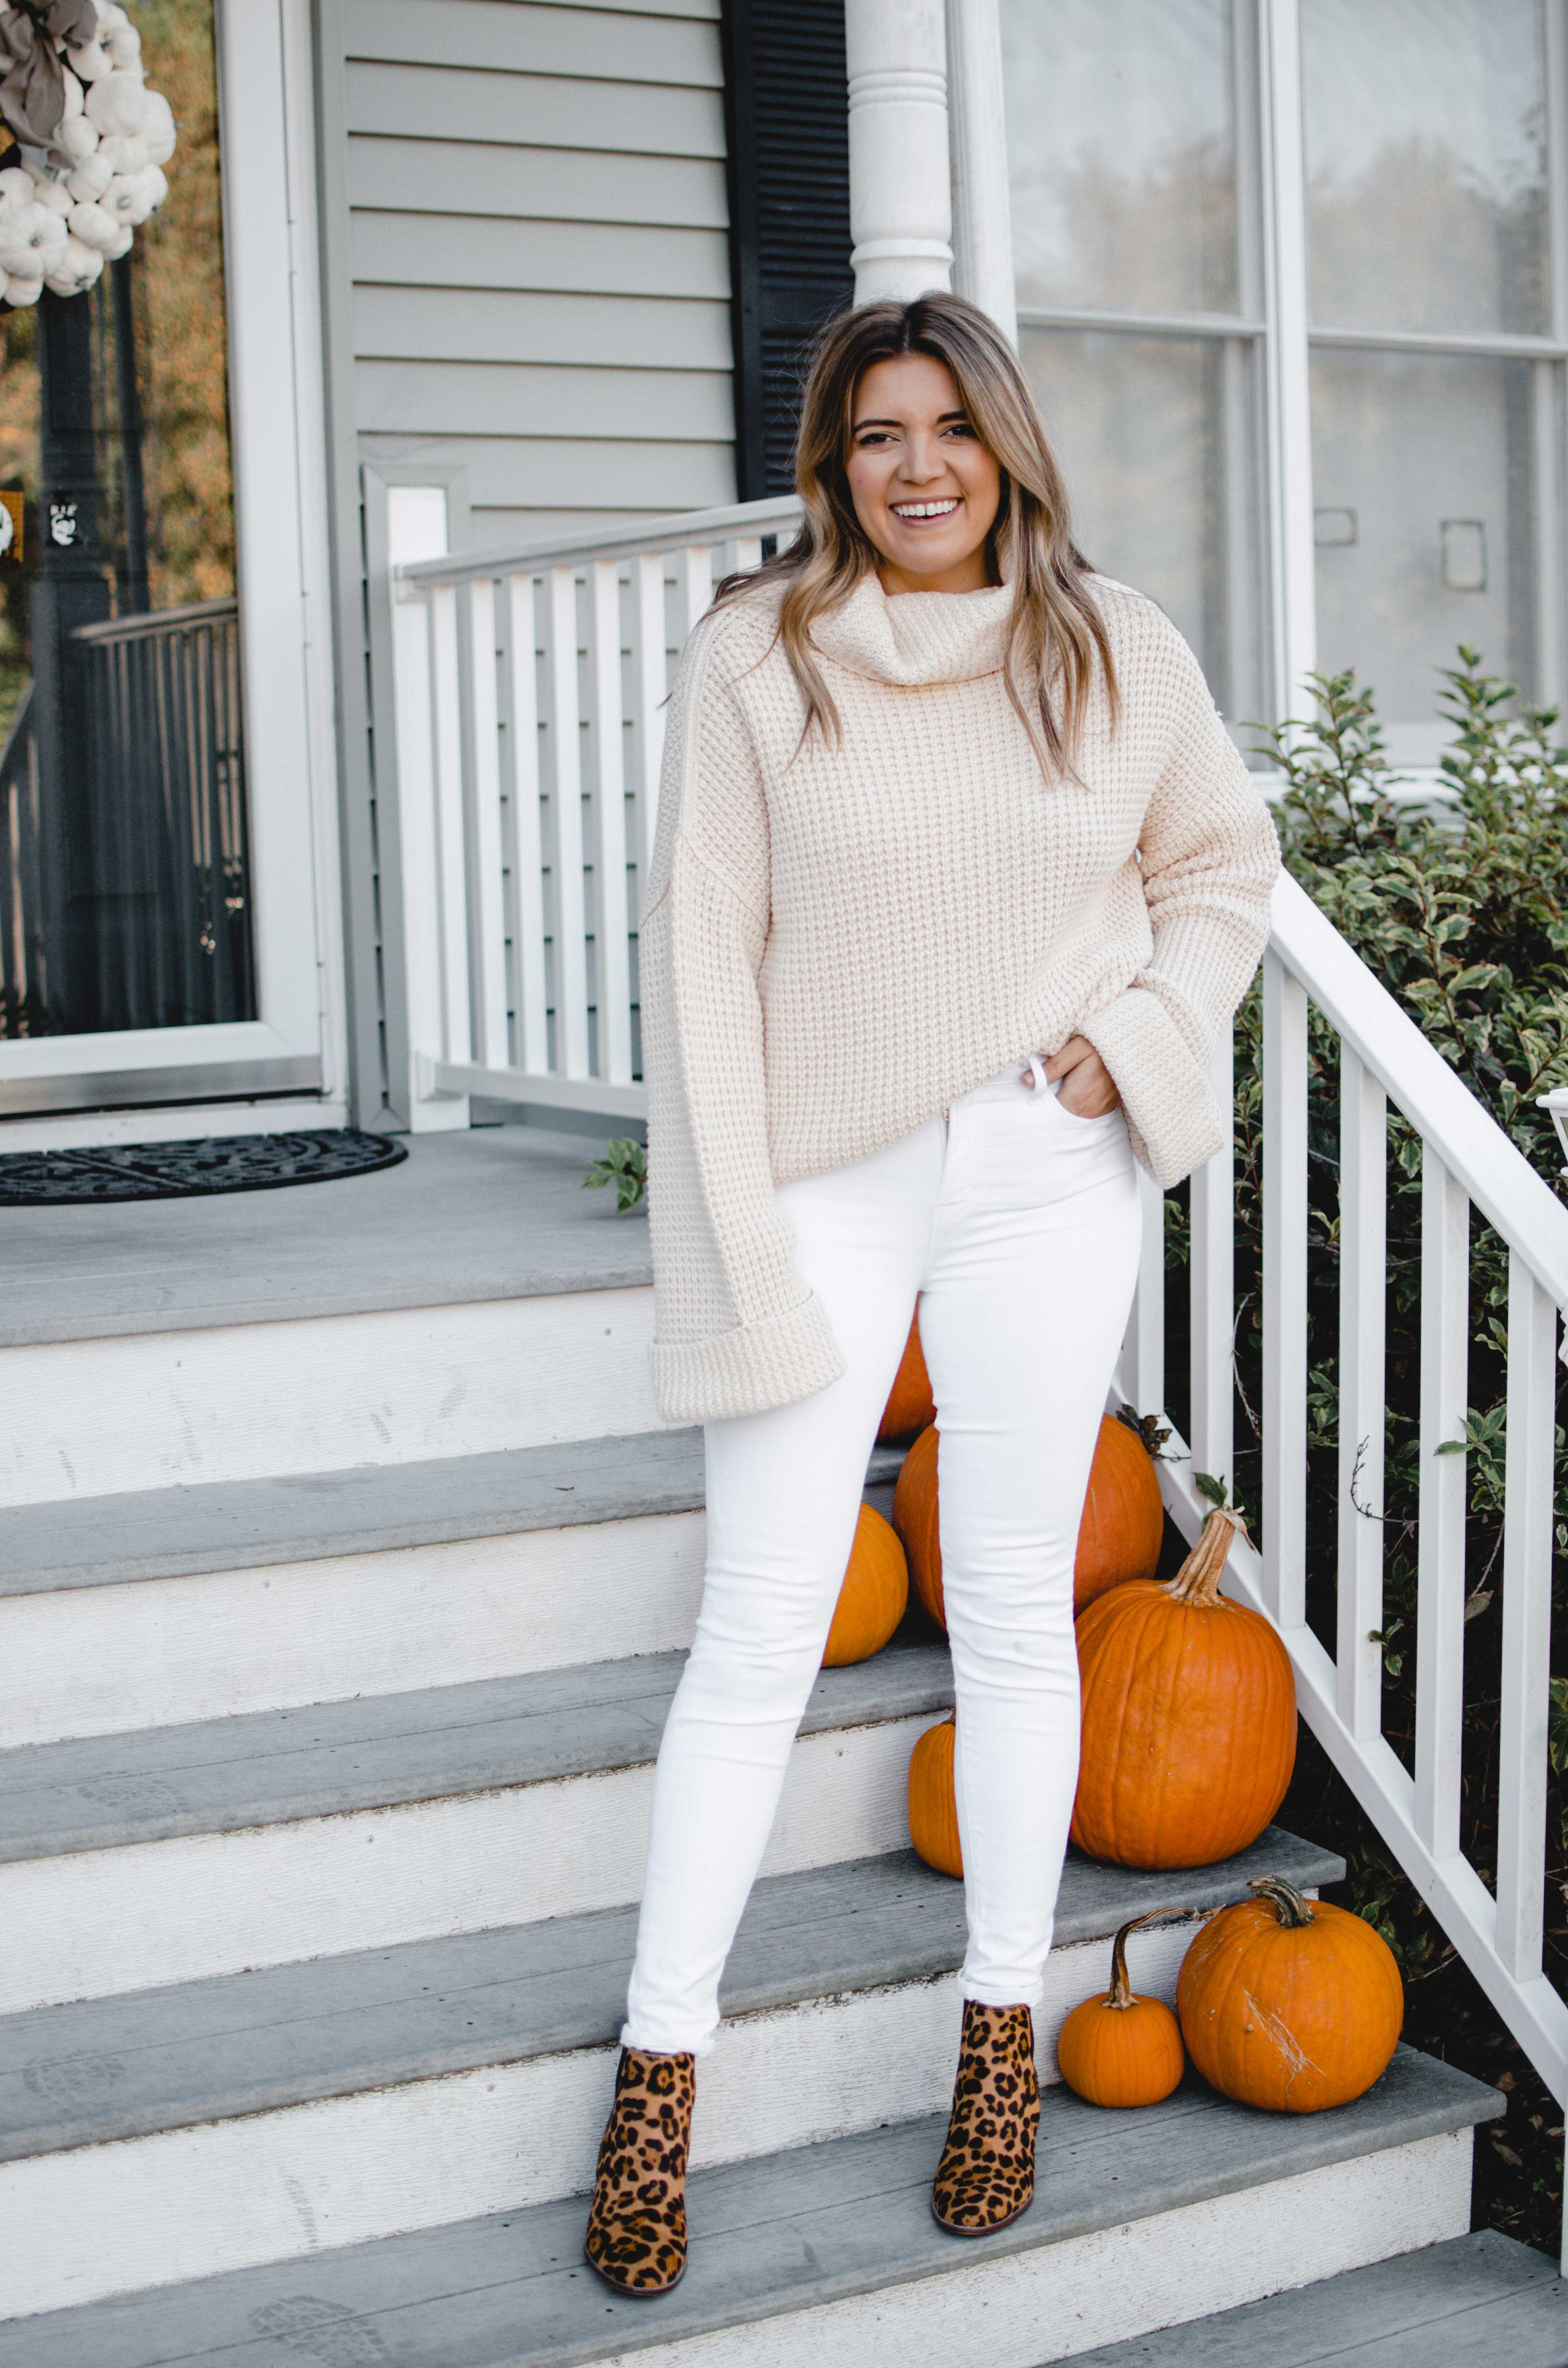 Virginia blogger, Lauren Dix, shares six leopard booties outfits for fall and winter.